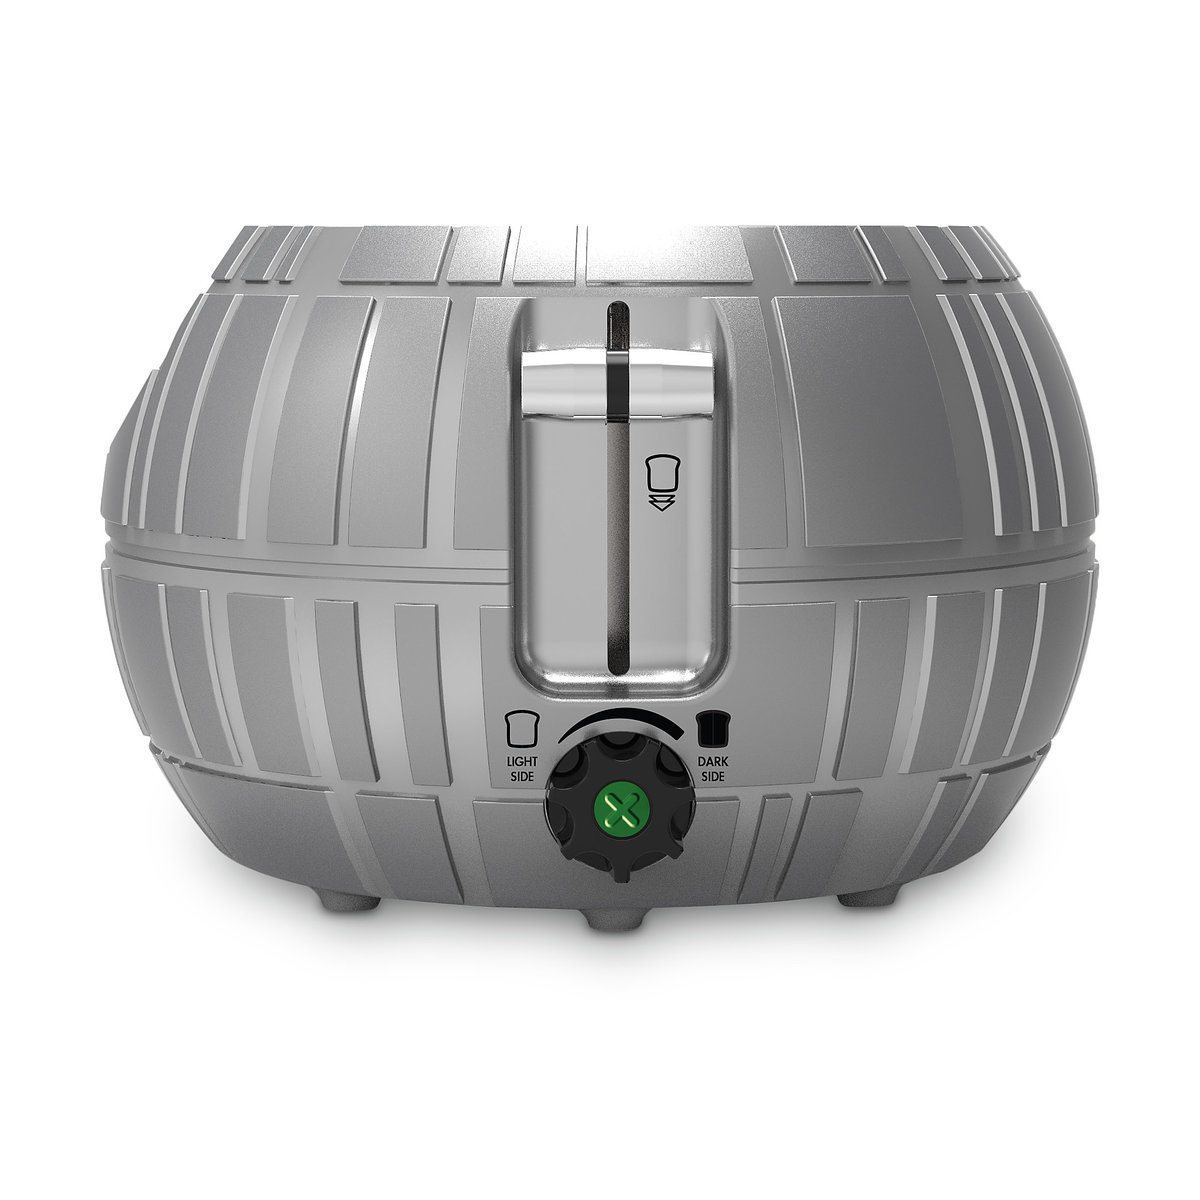 ○送料込○ スターウォーズ Death Star Toaster - Star Wars